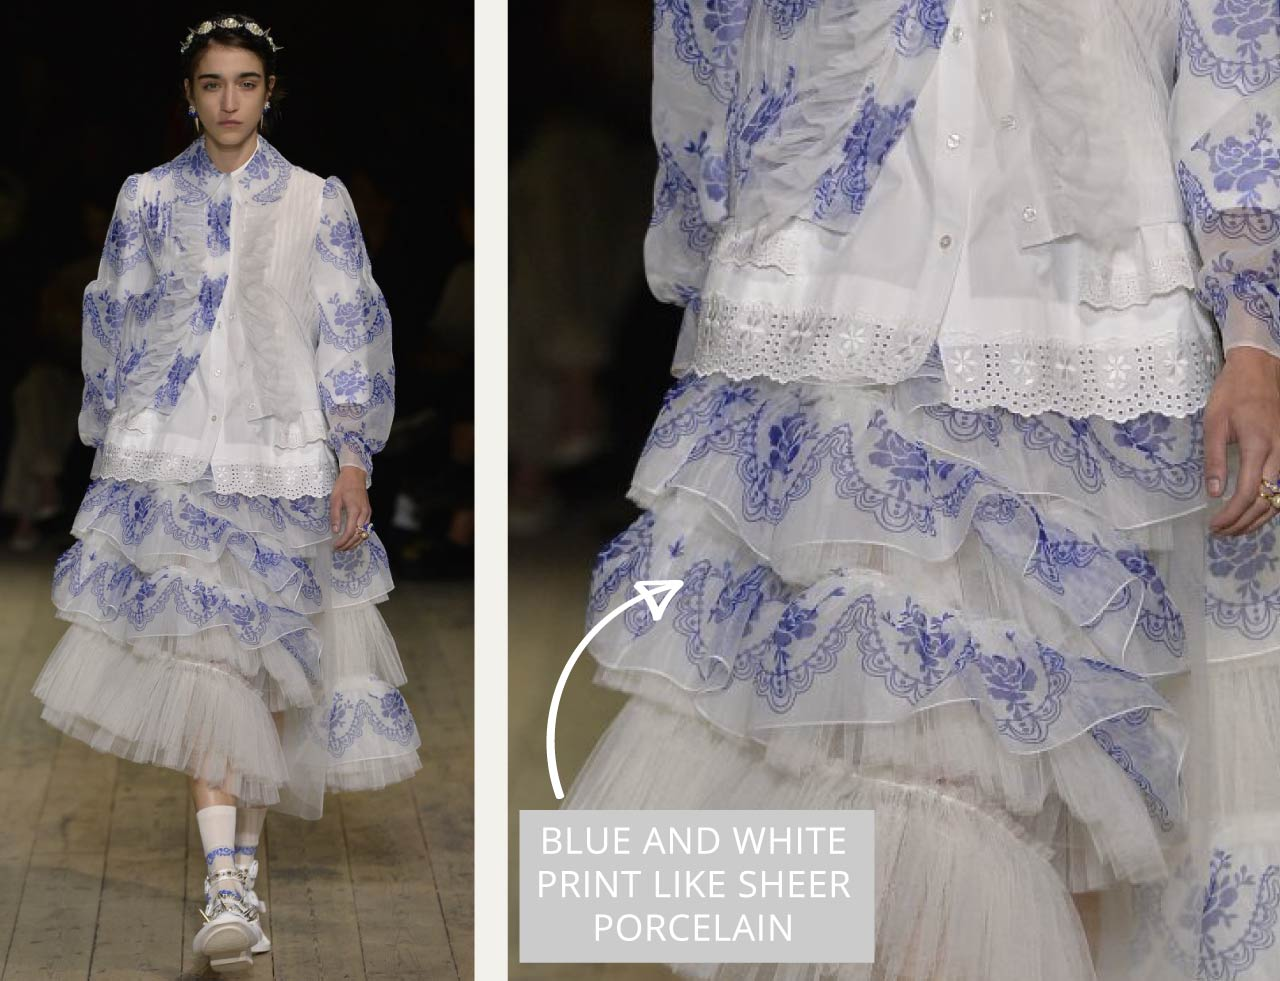 Translucent Layers at Simone Rocha | The Cutting Class. Blue printed fabric with sheer white background like delicate porcelain.